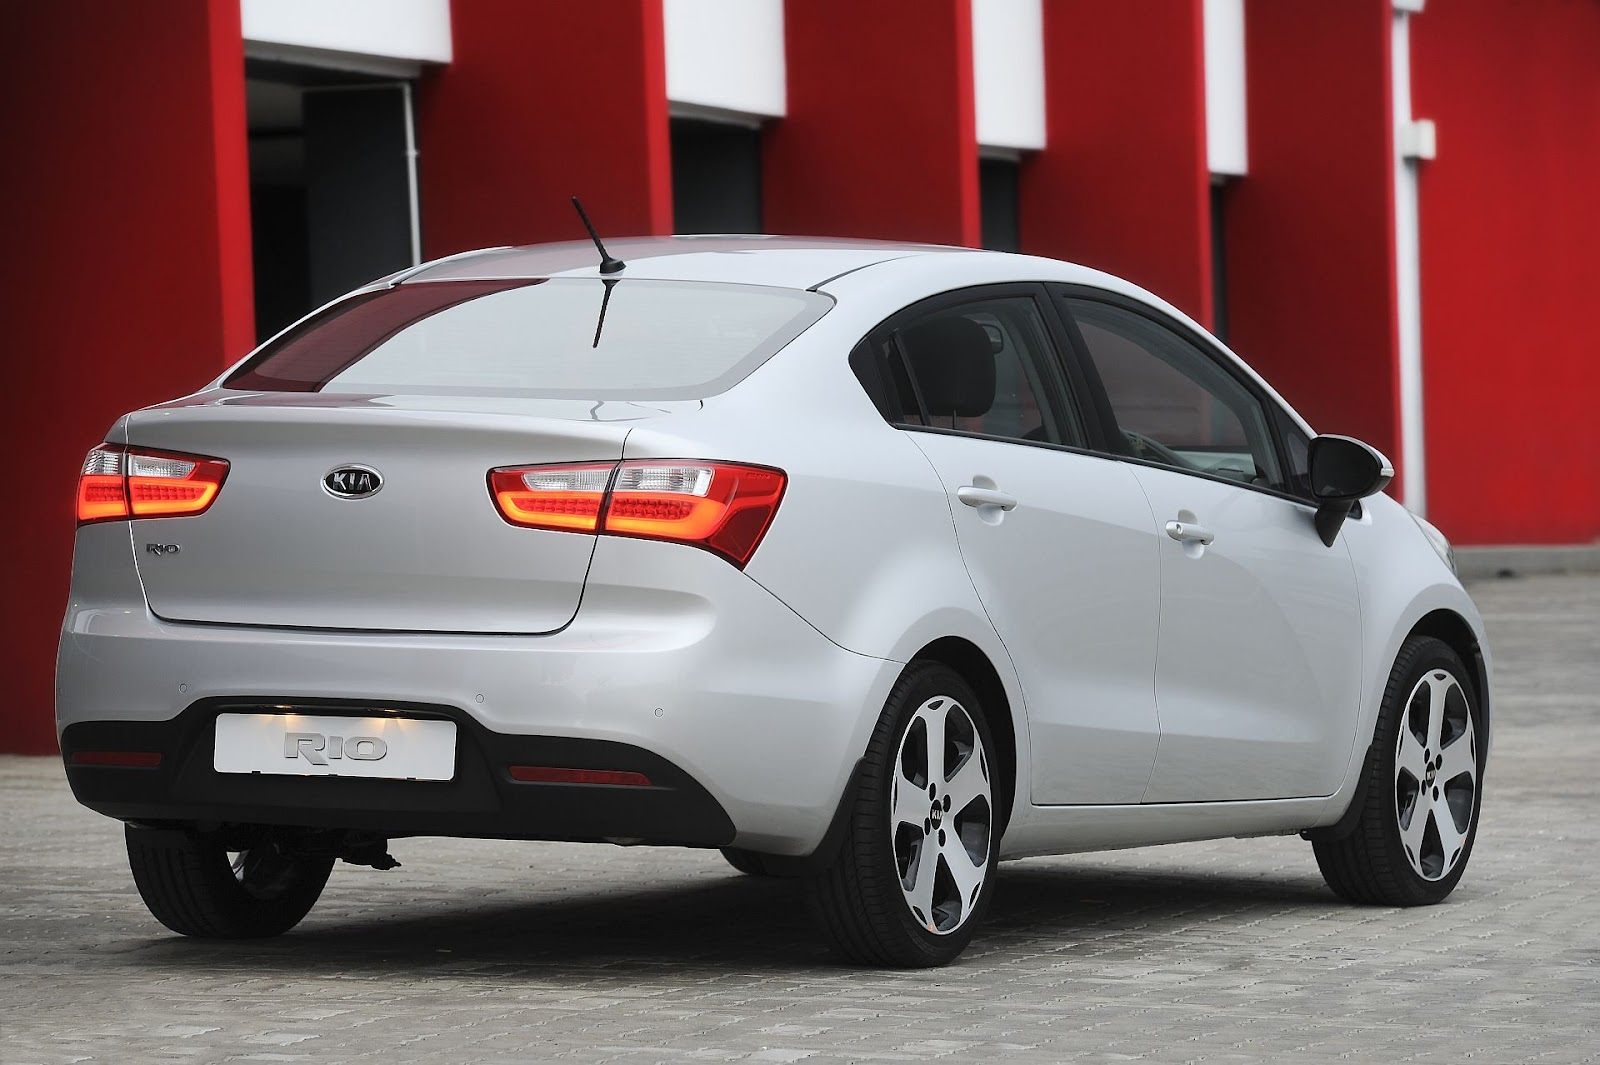 new kia rio sedan launches in mzansi awesome cars new. Black Bedroom Furniture Sets. Home Design Ideas